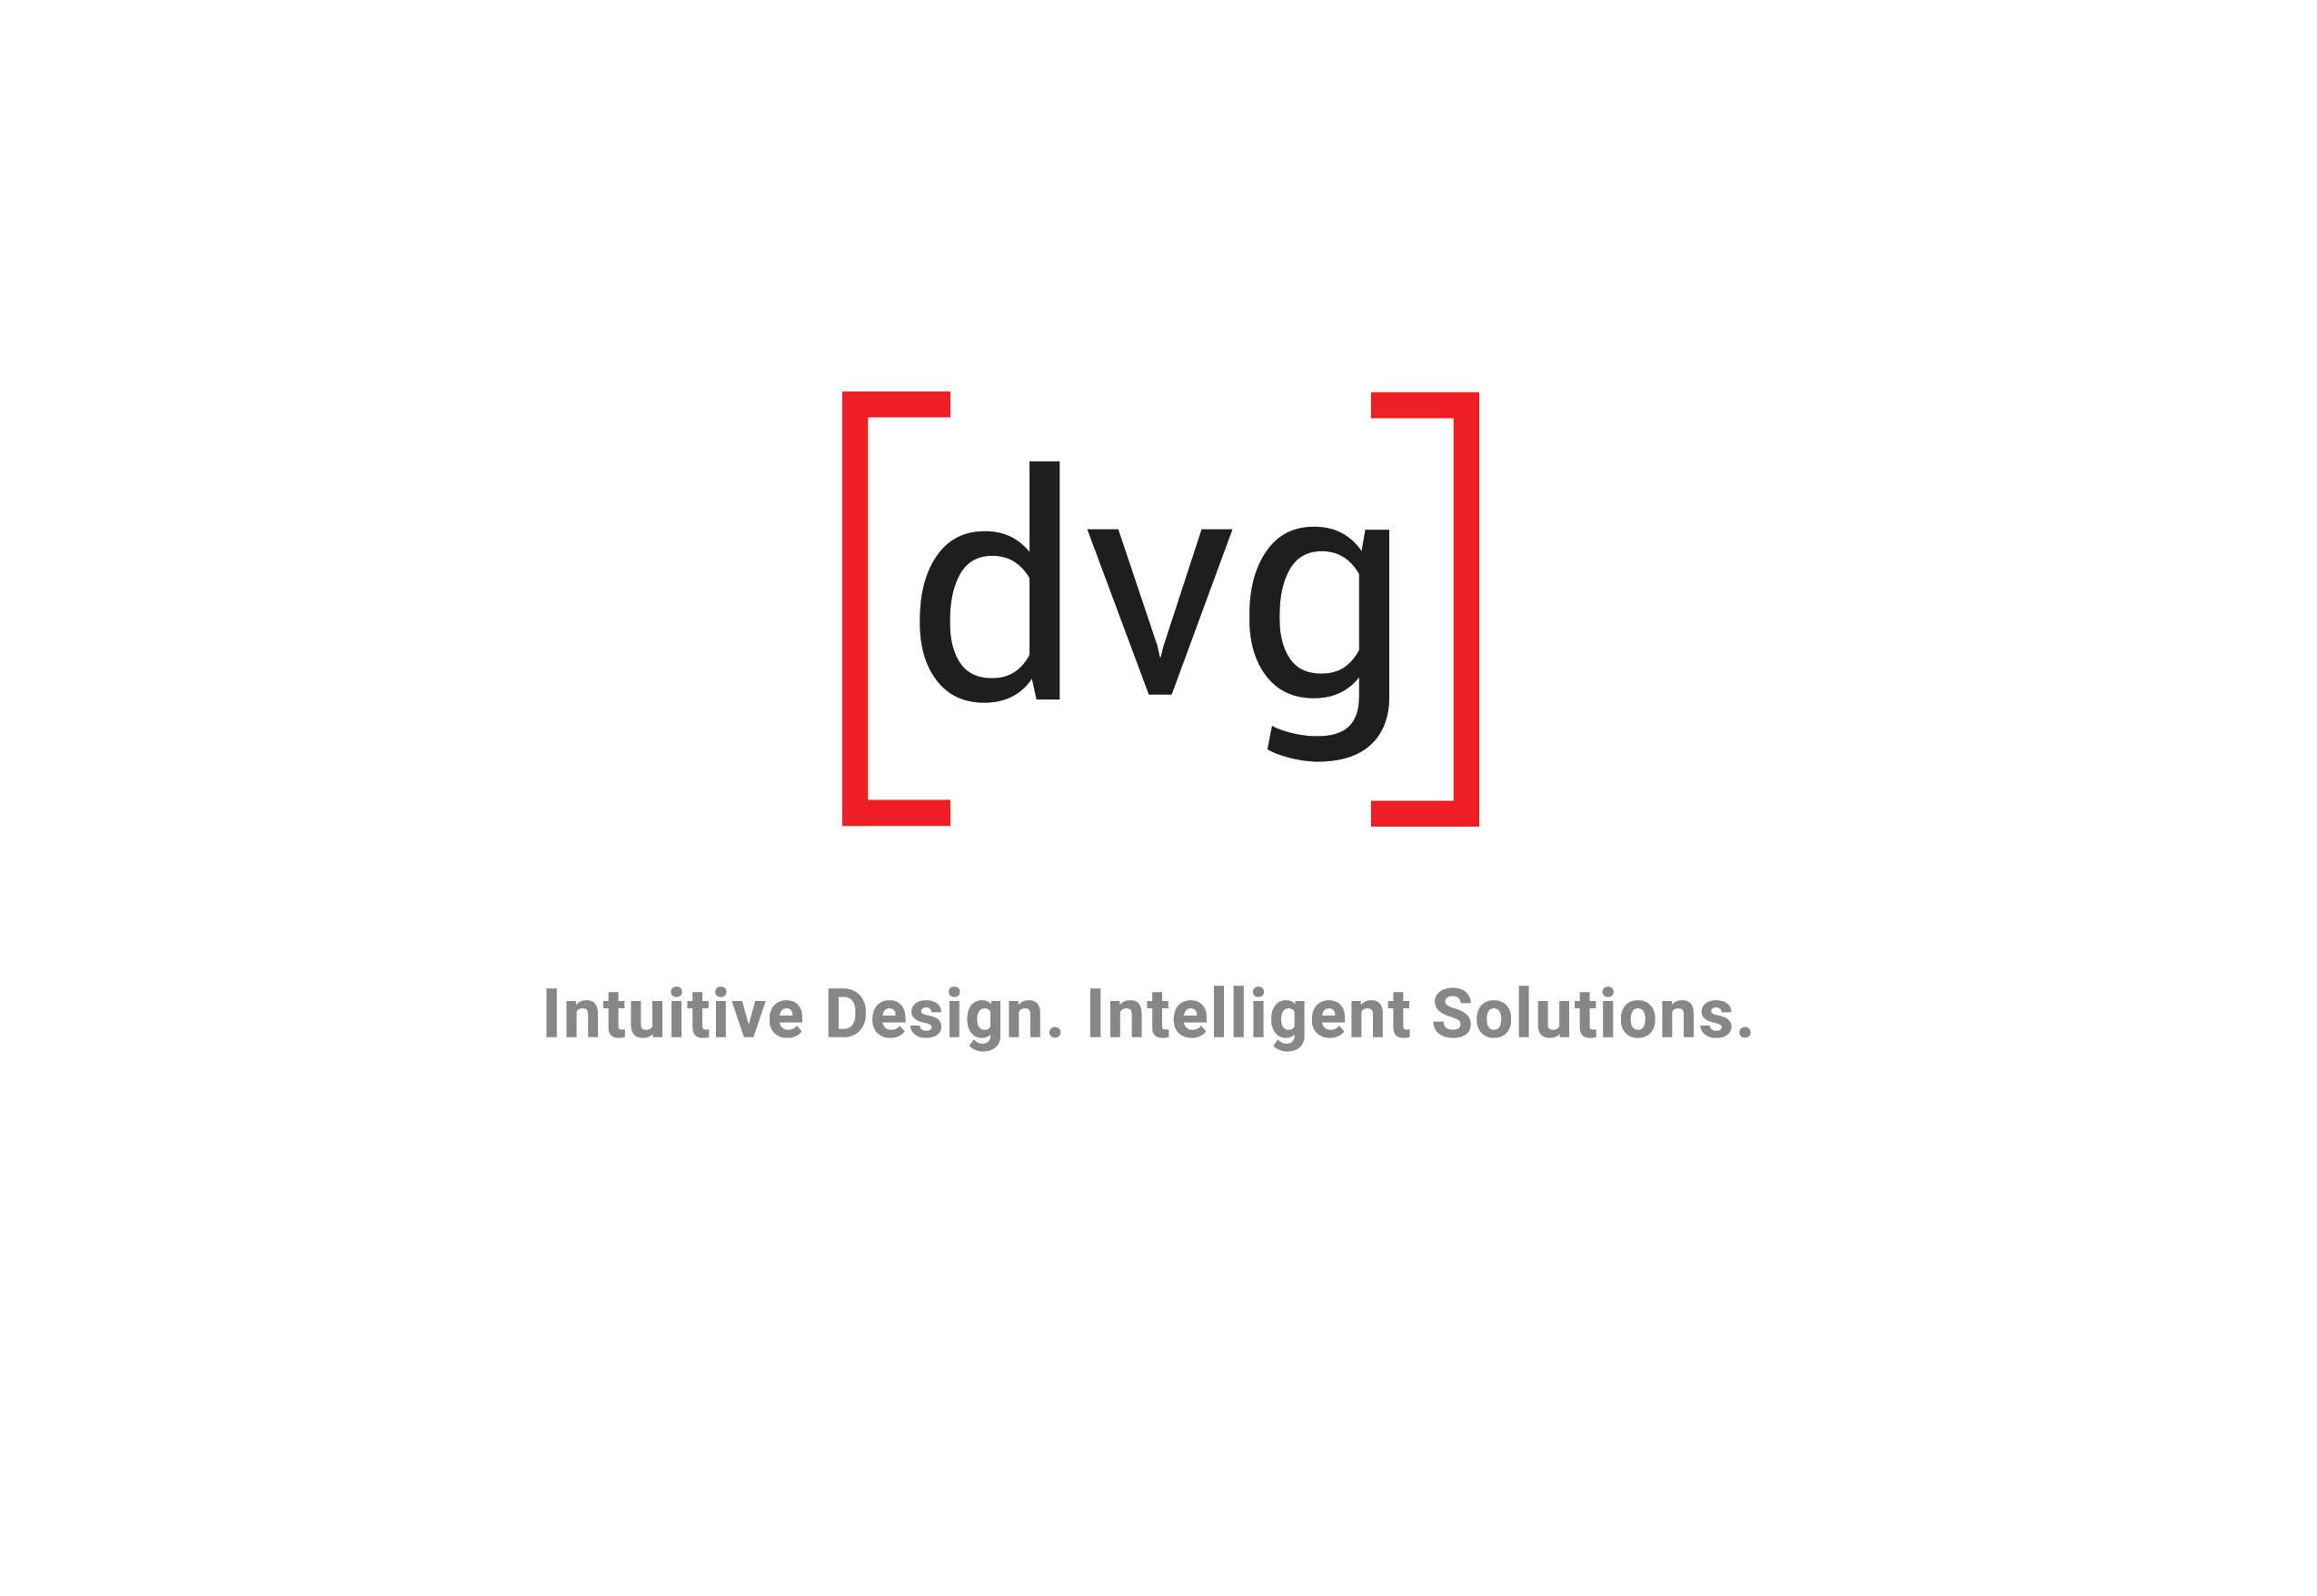 DATA VISION GROUP LLC